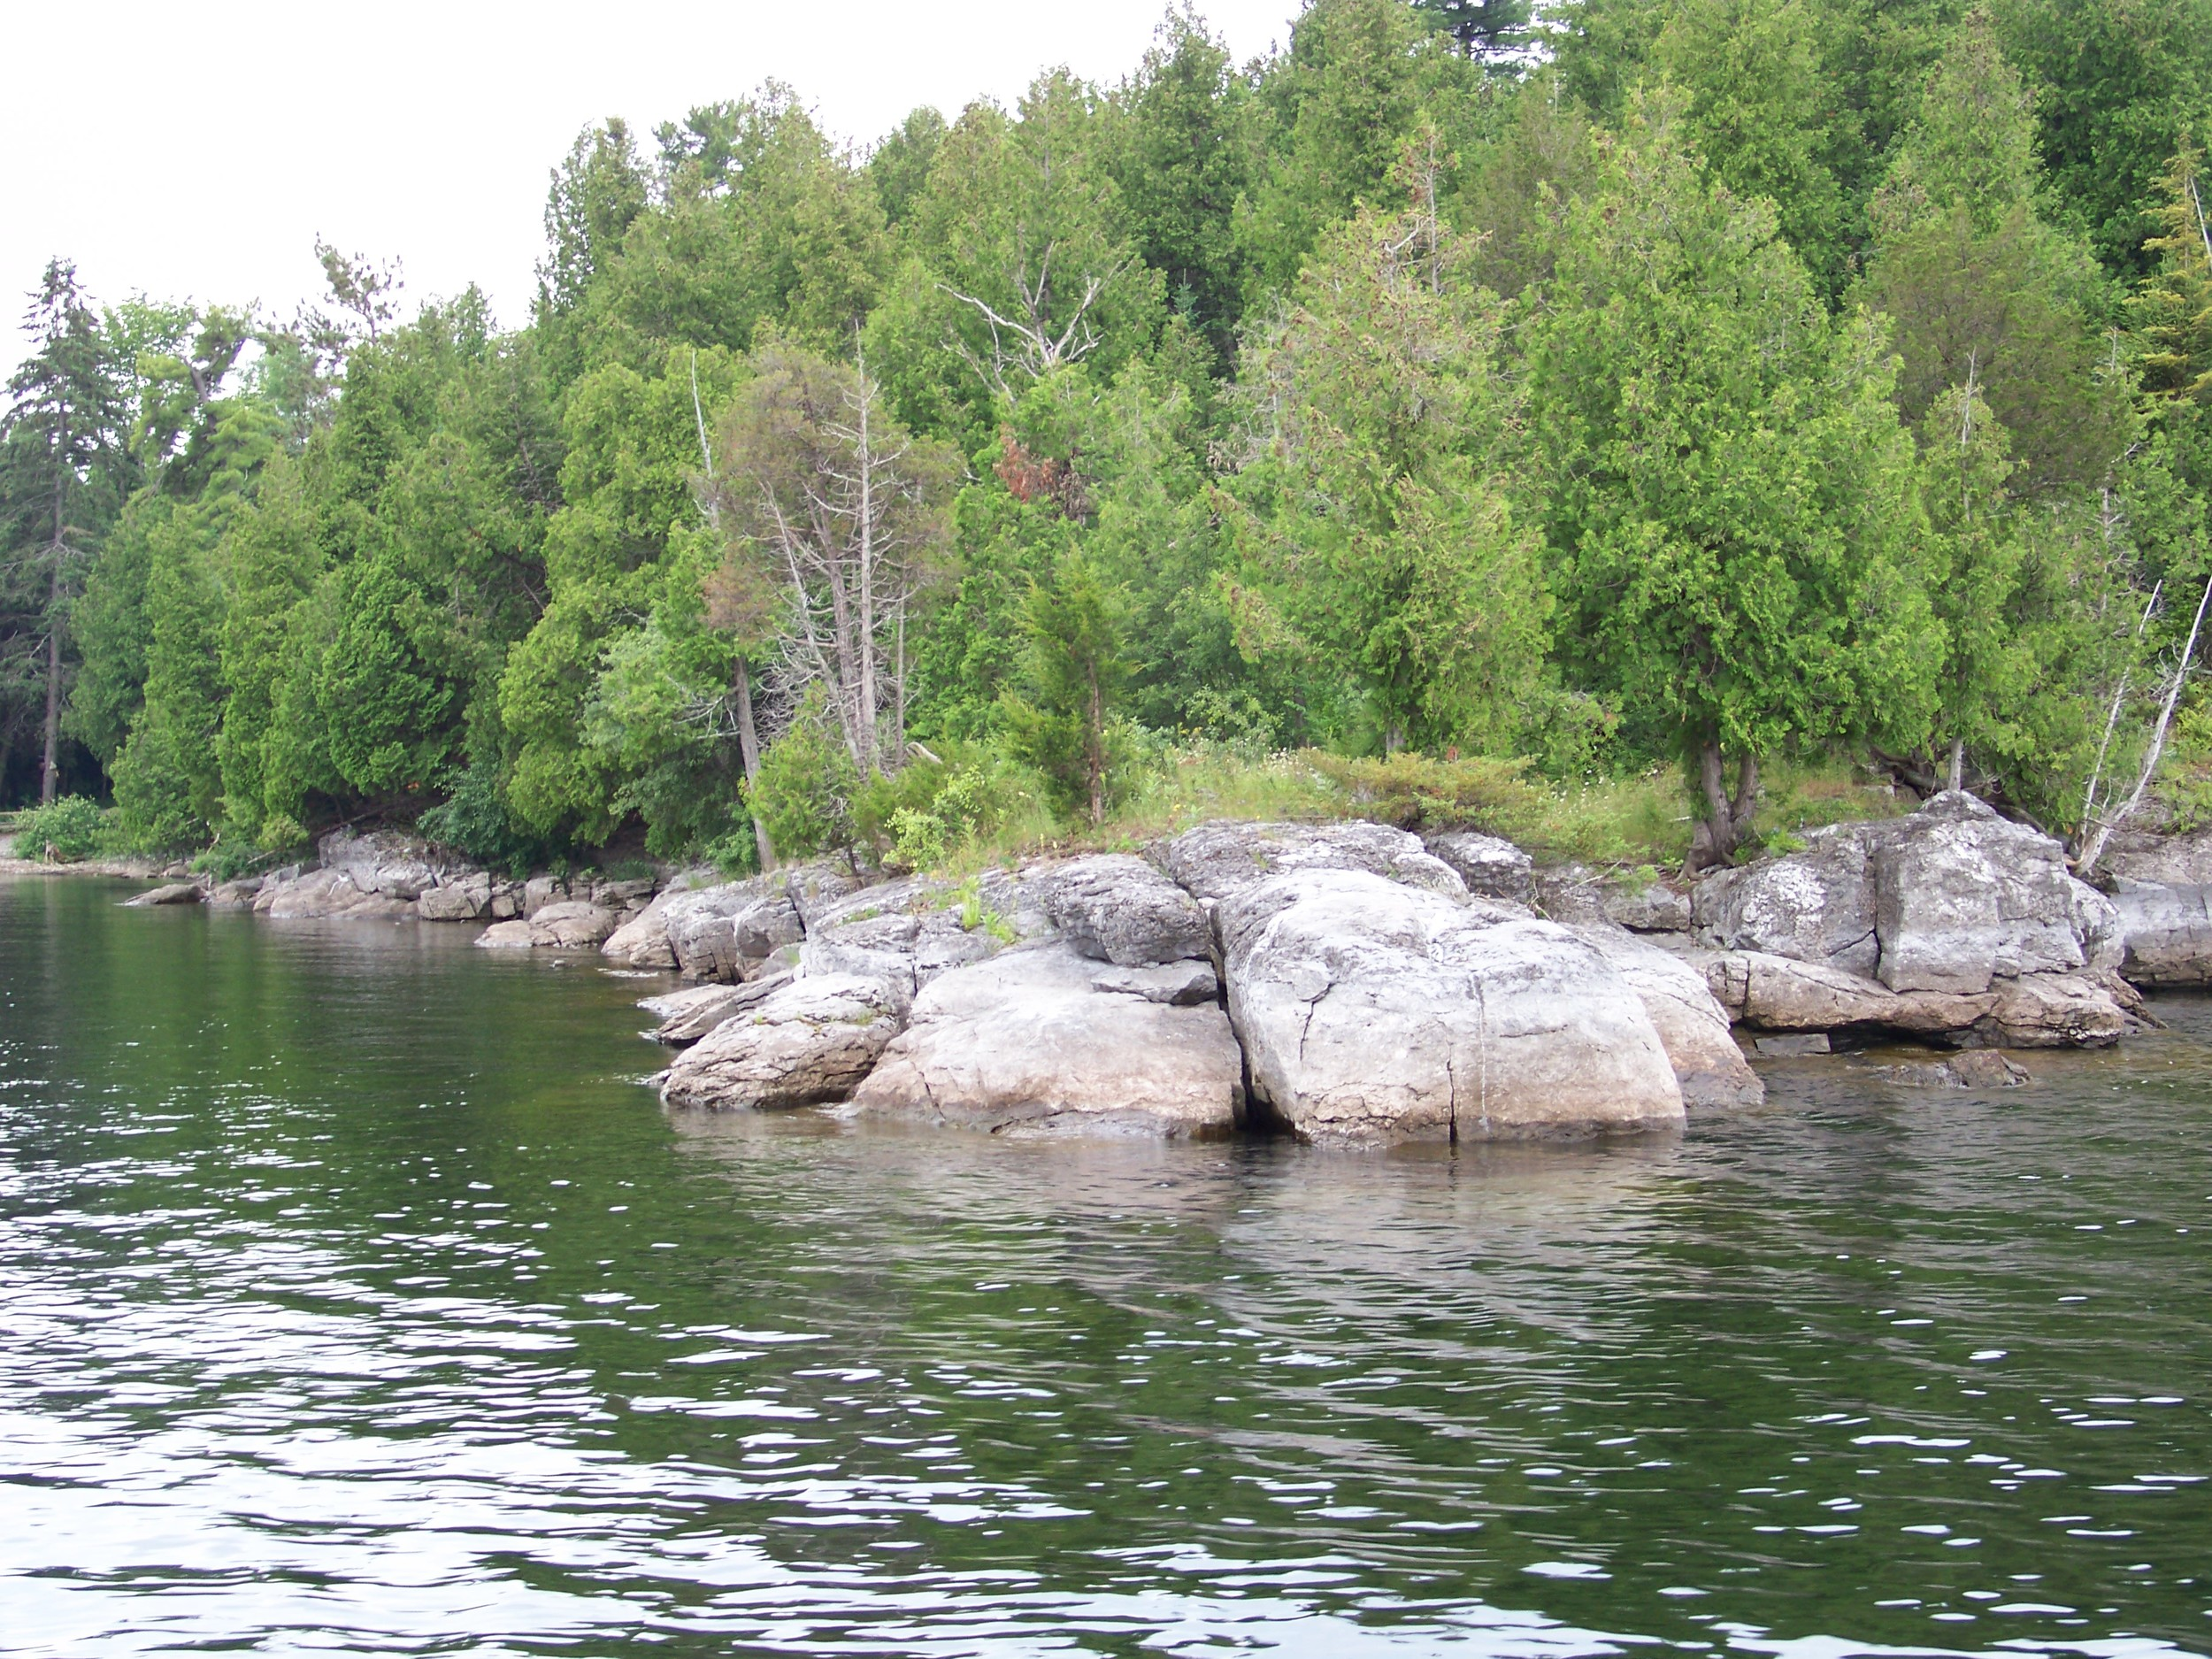 This rocky point on Valcour Island just south of Plattsburgh New York has a shallow bay to the left and steep bluff walls to the right.